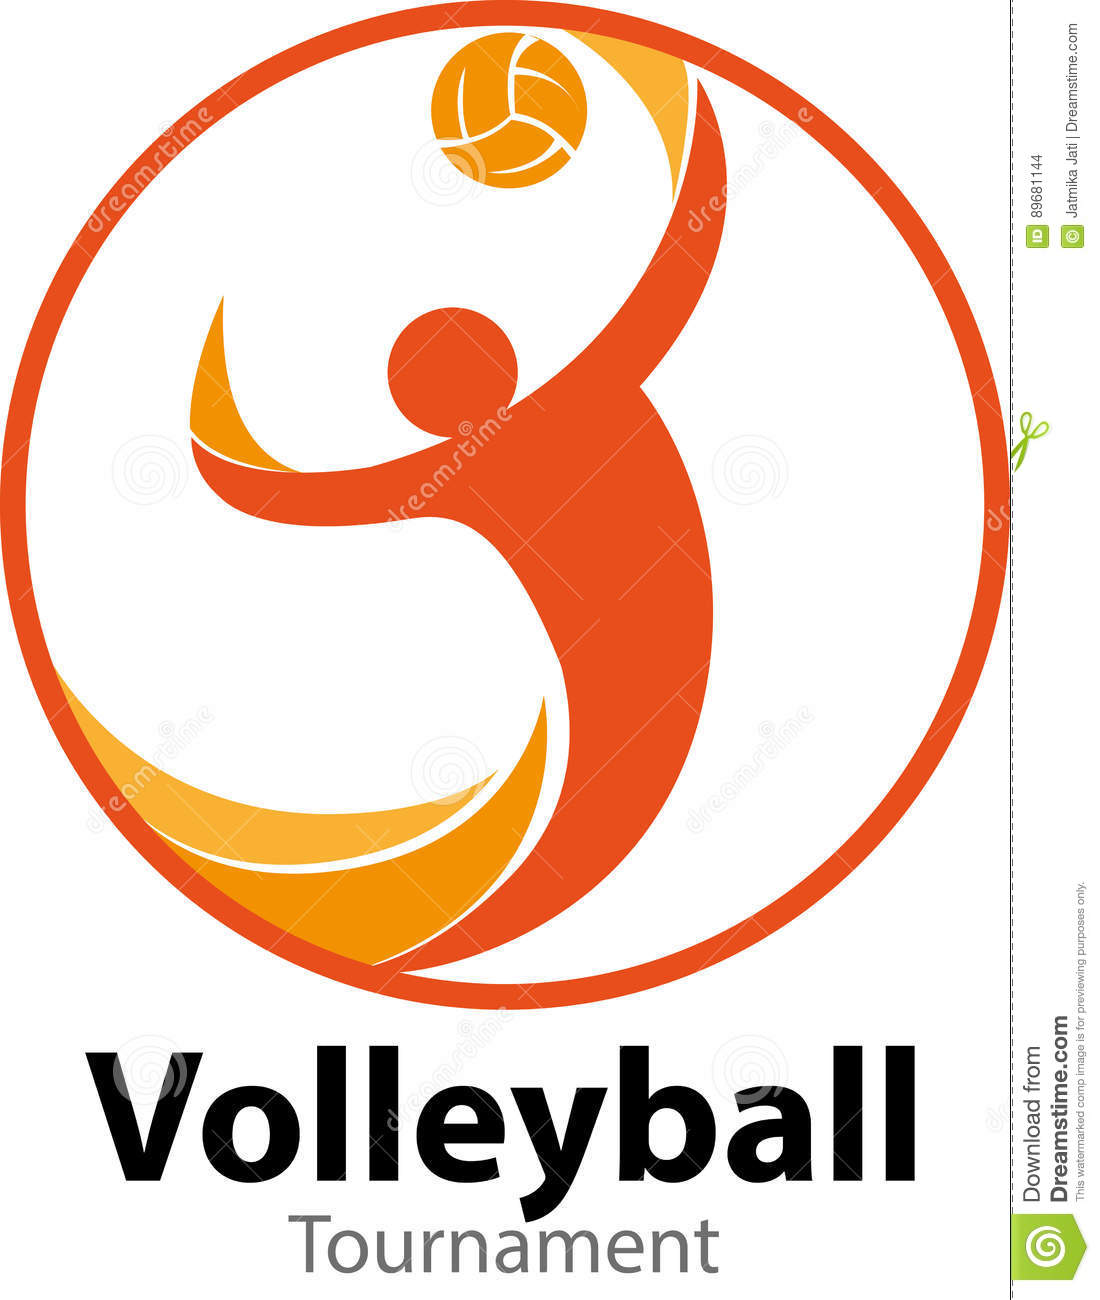 Volleyball Tournament Logo Event Stock Vector Illustration Of